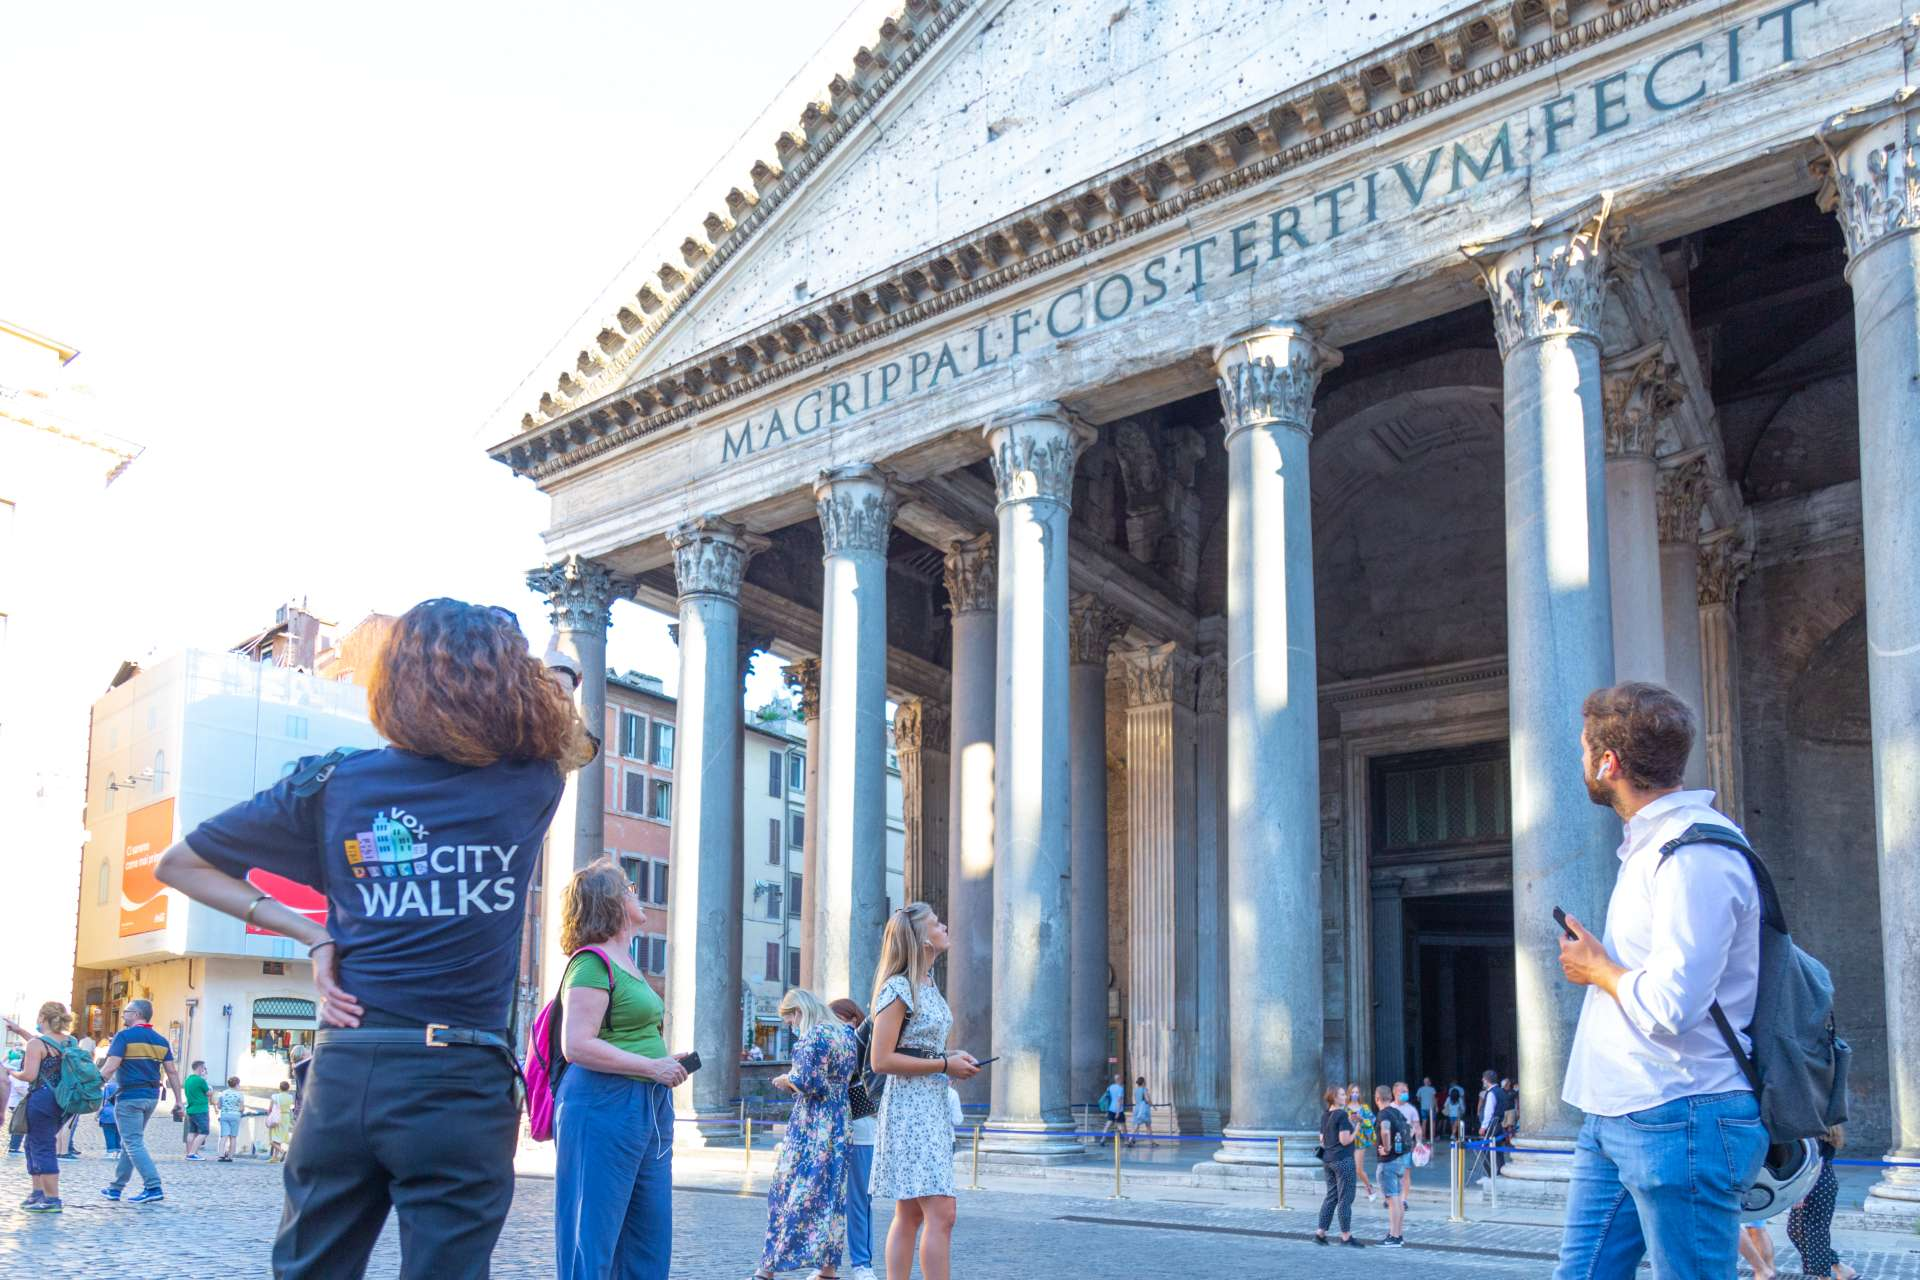 Vox City Walks Guide at Rome